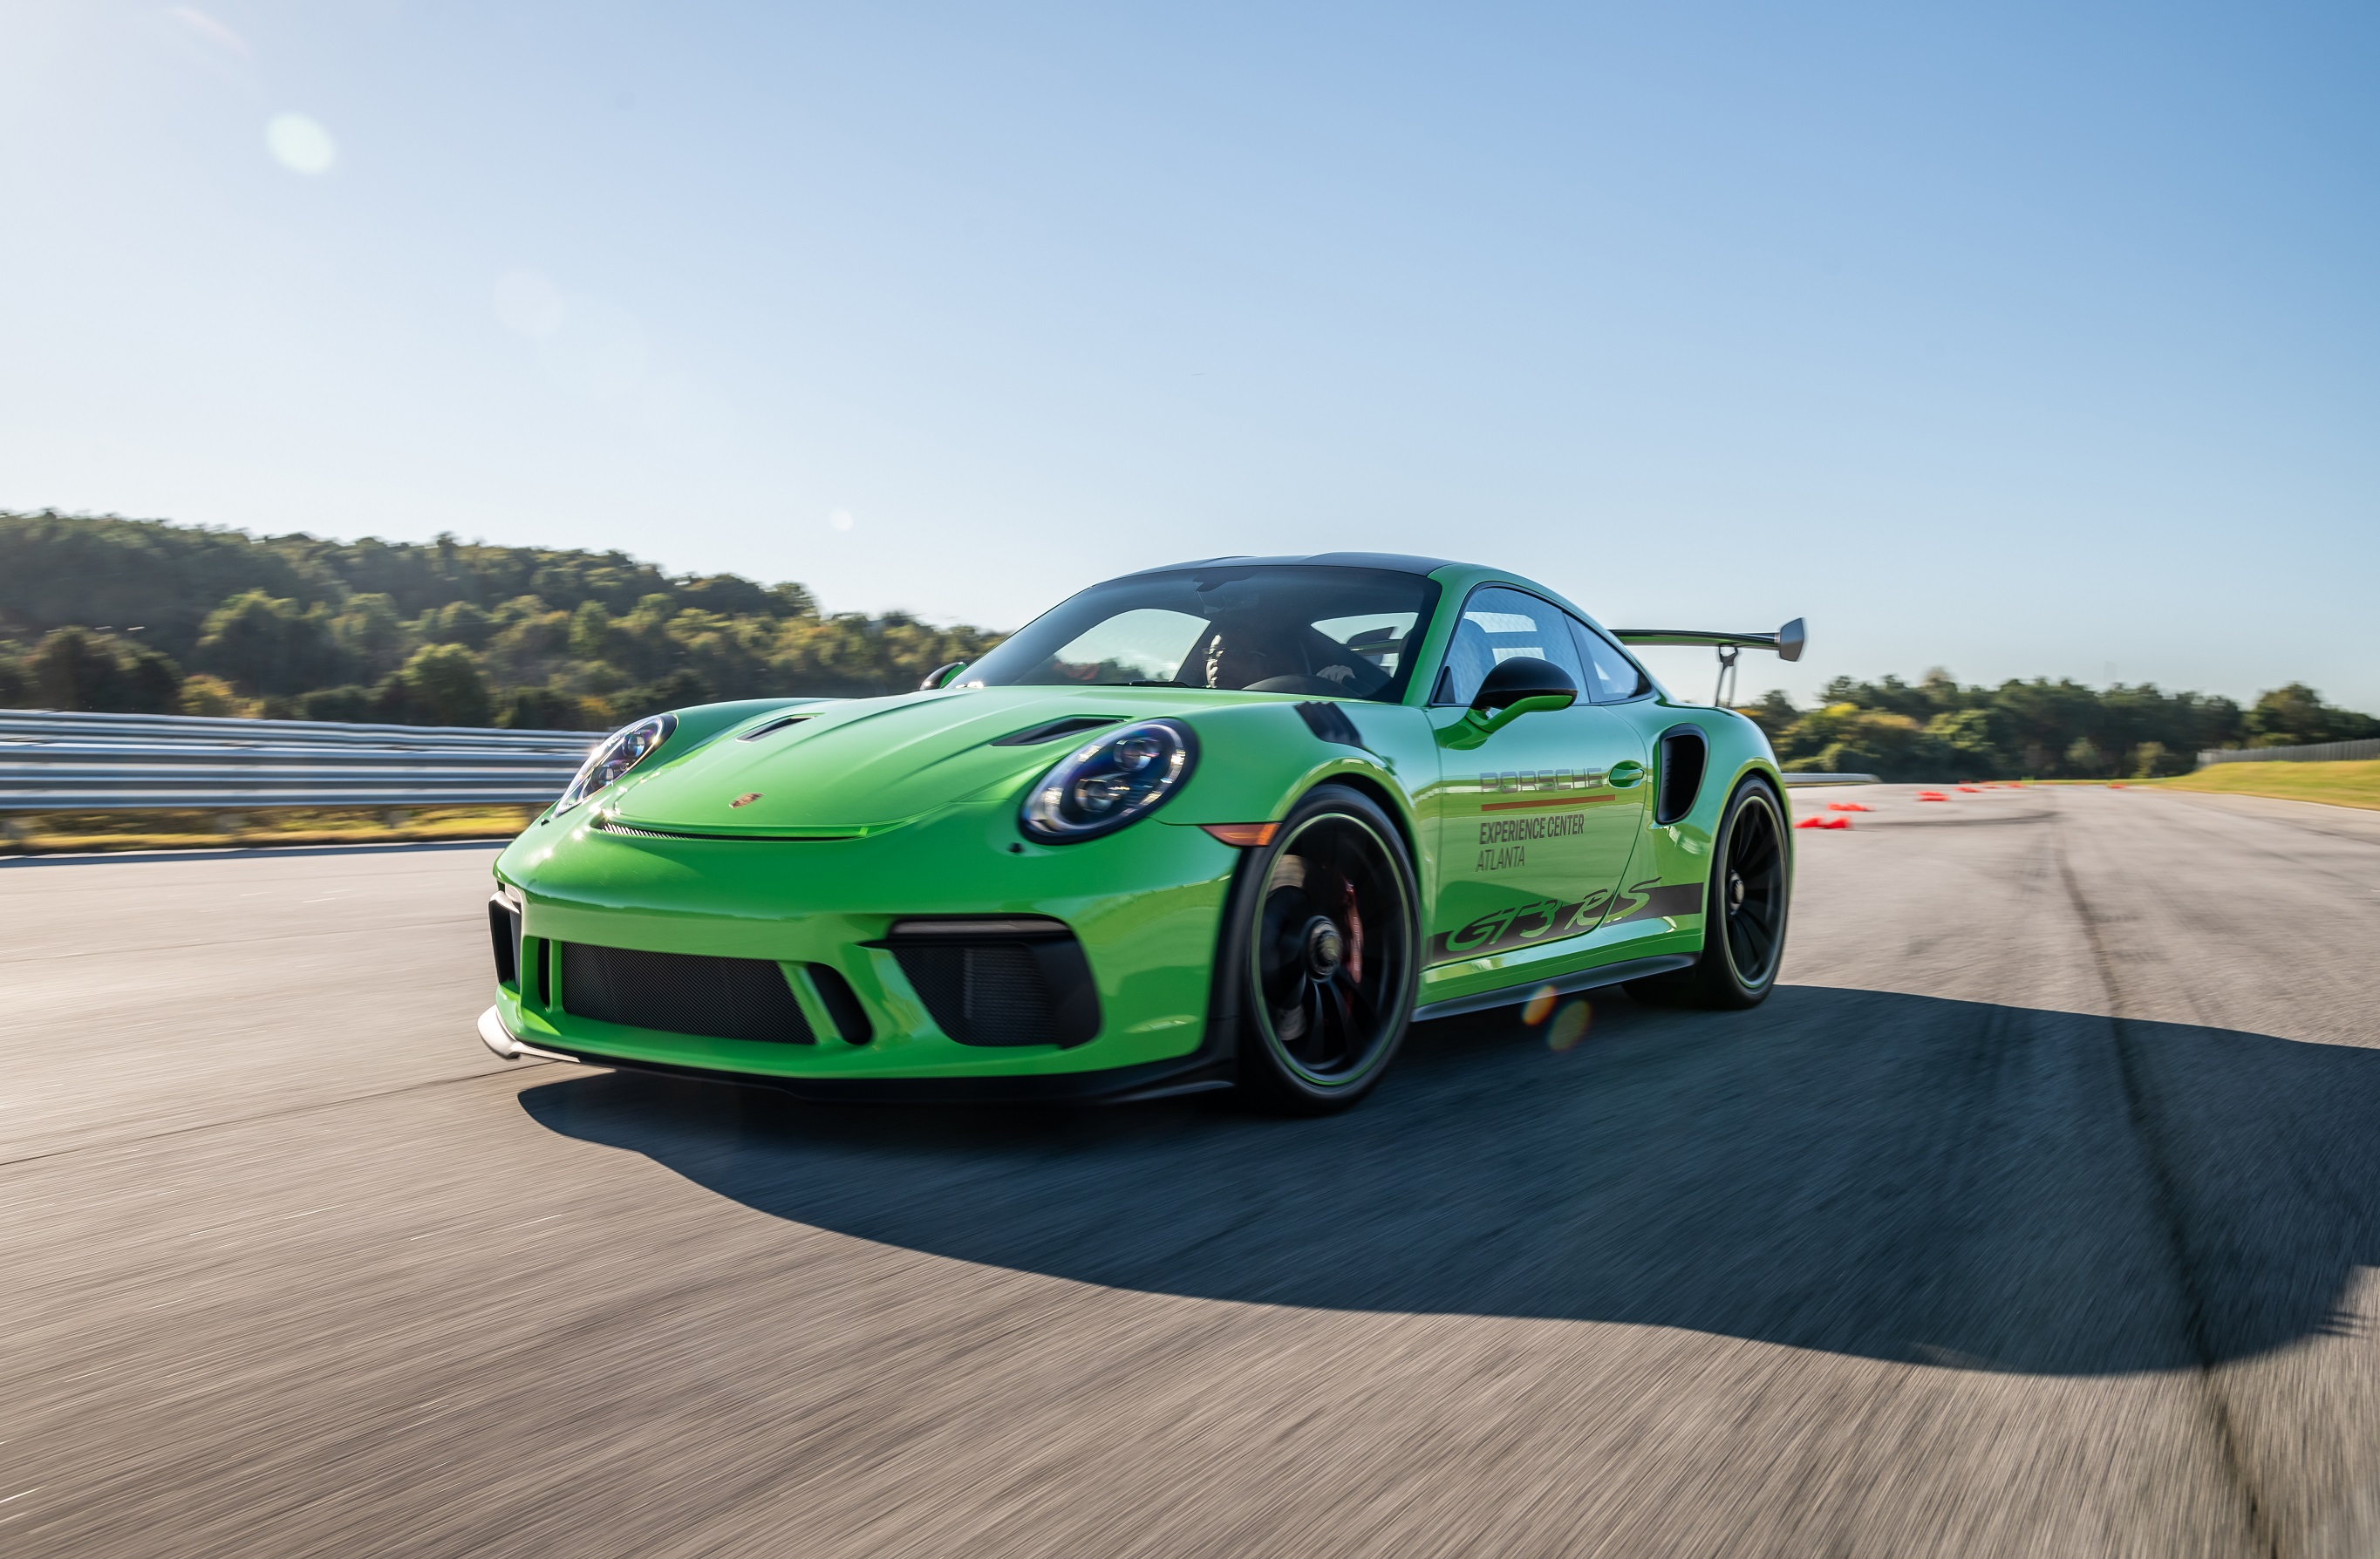 Porsche U.S. Fleets Go Carbon-Neutral With CO2 Offset Program